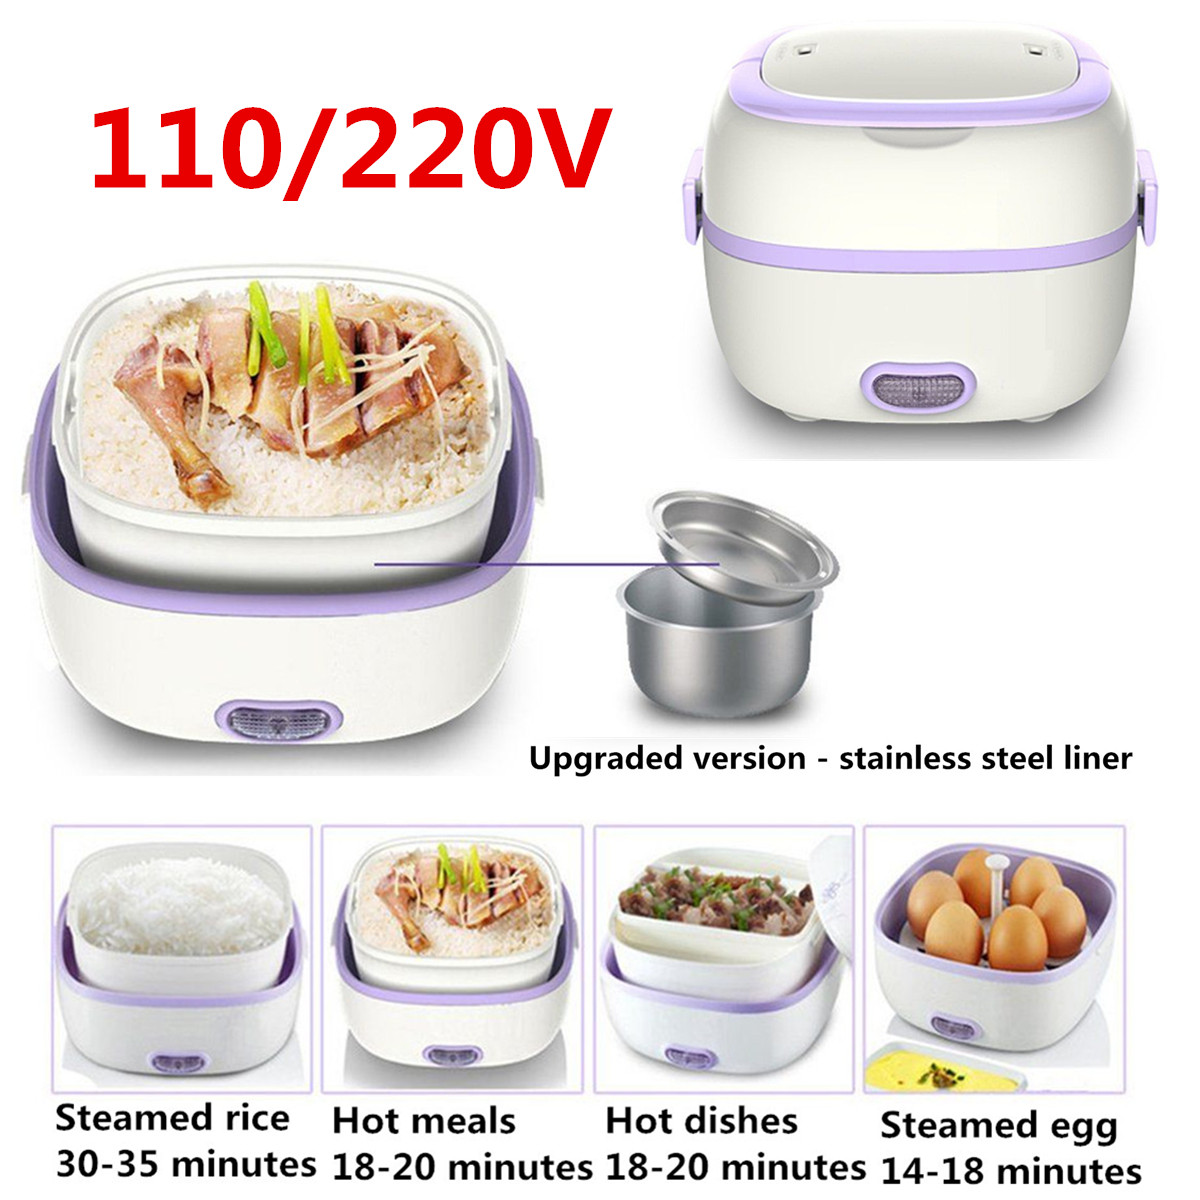 Multifunctional Electric Lunch Box Mini Rice Cooker Portable Food Heating Steamer Heat Preservation Lunch Box EU Plug/US plug